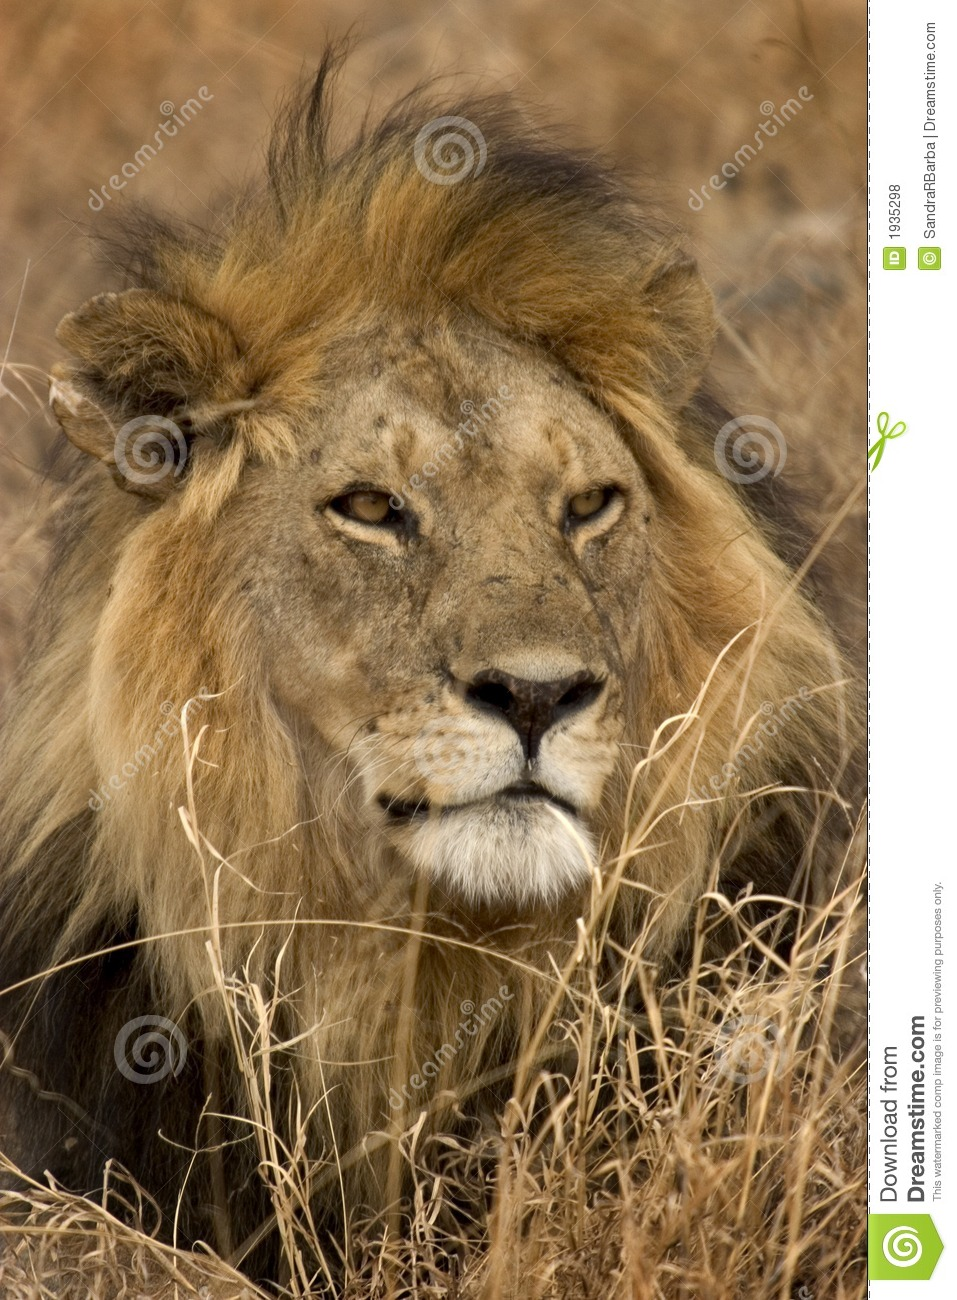 3d Wallpapers Wild Animals Wild Animal In Africa Serengeti National Park Royalty